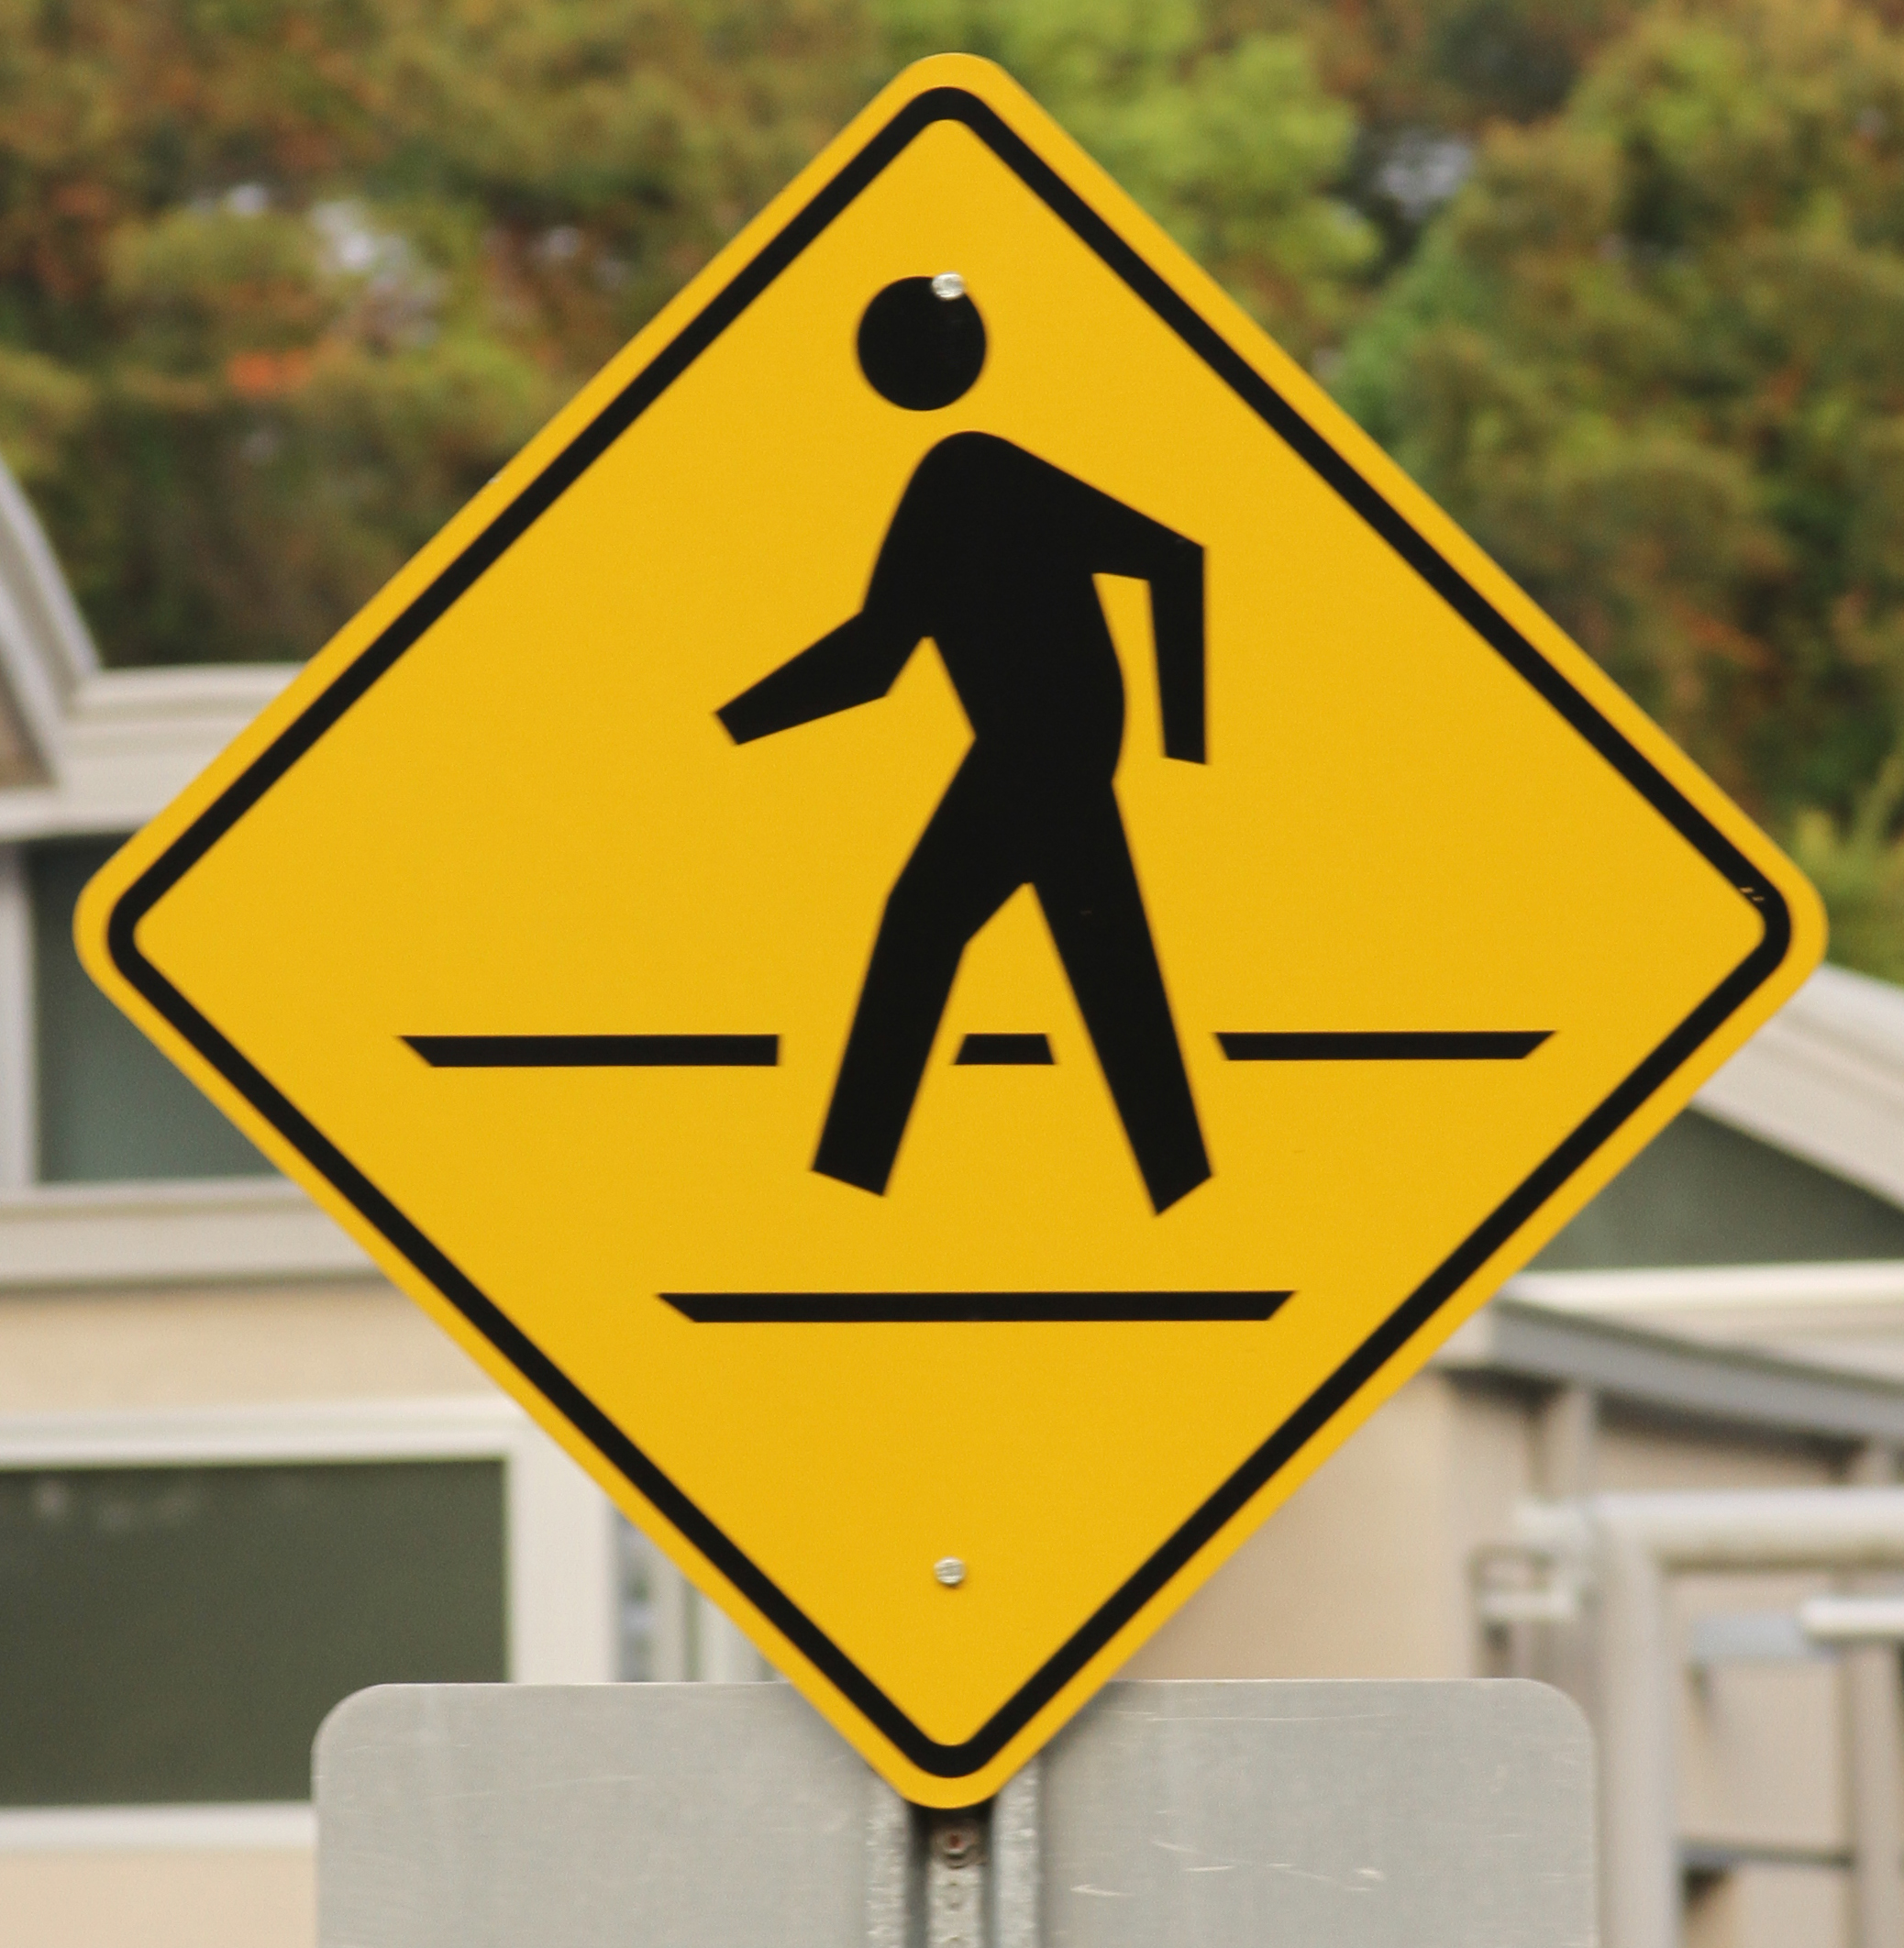 Pedestrian sign photo